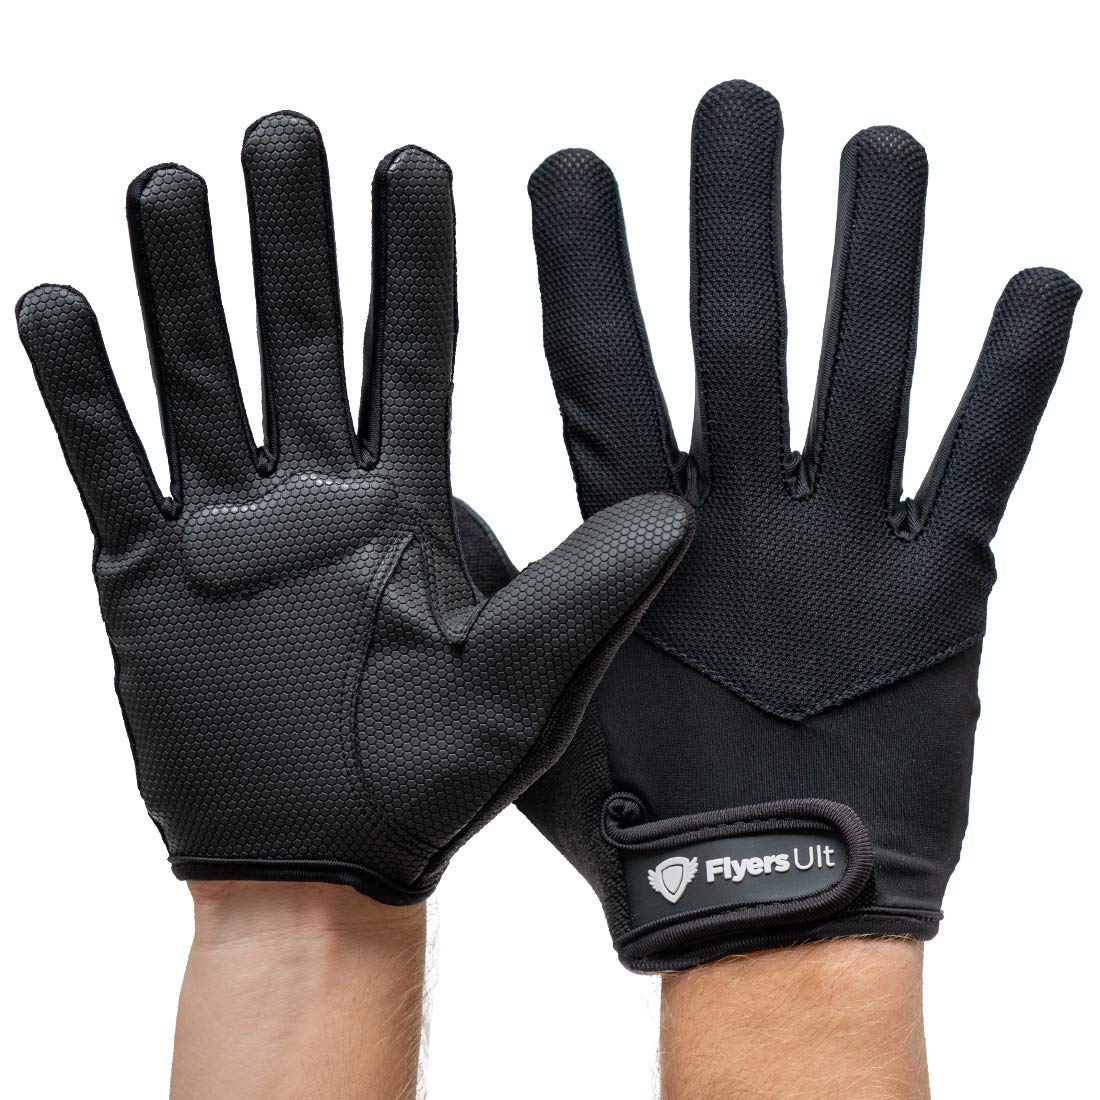 Flyers Ult Pentaero Ultimate Frisbee Gloves (Small) by Flyers Ult